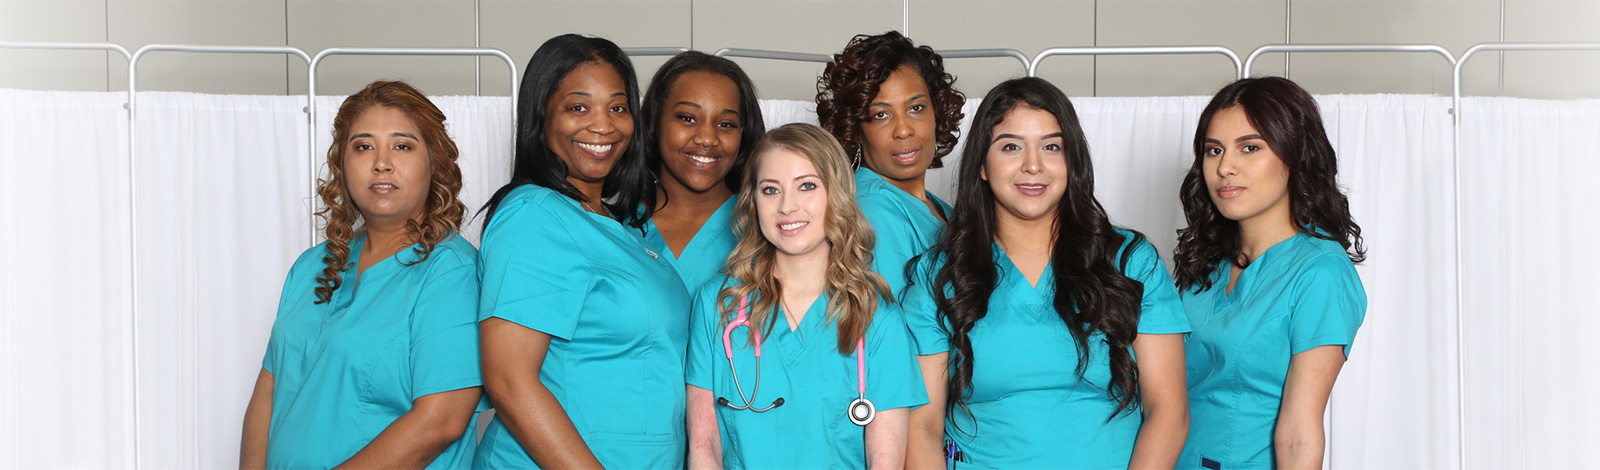 Nurses in a group smiling together.